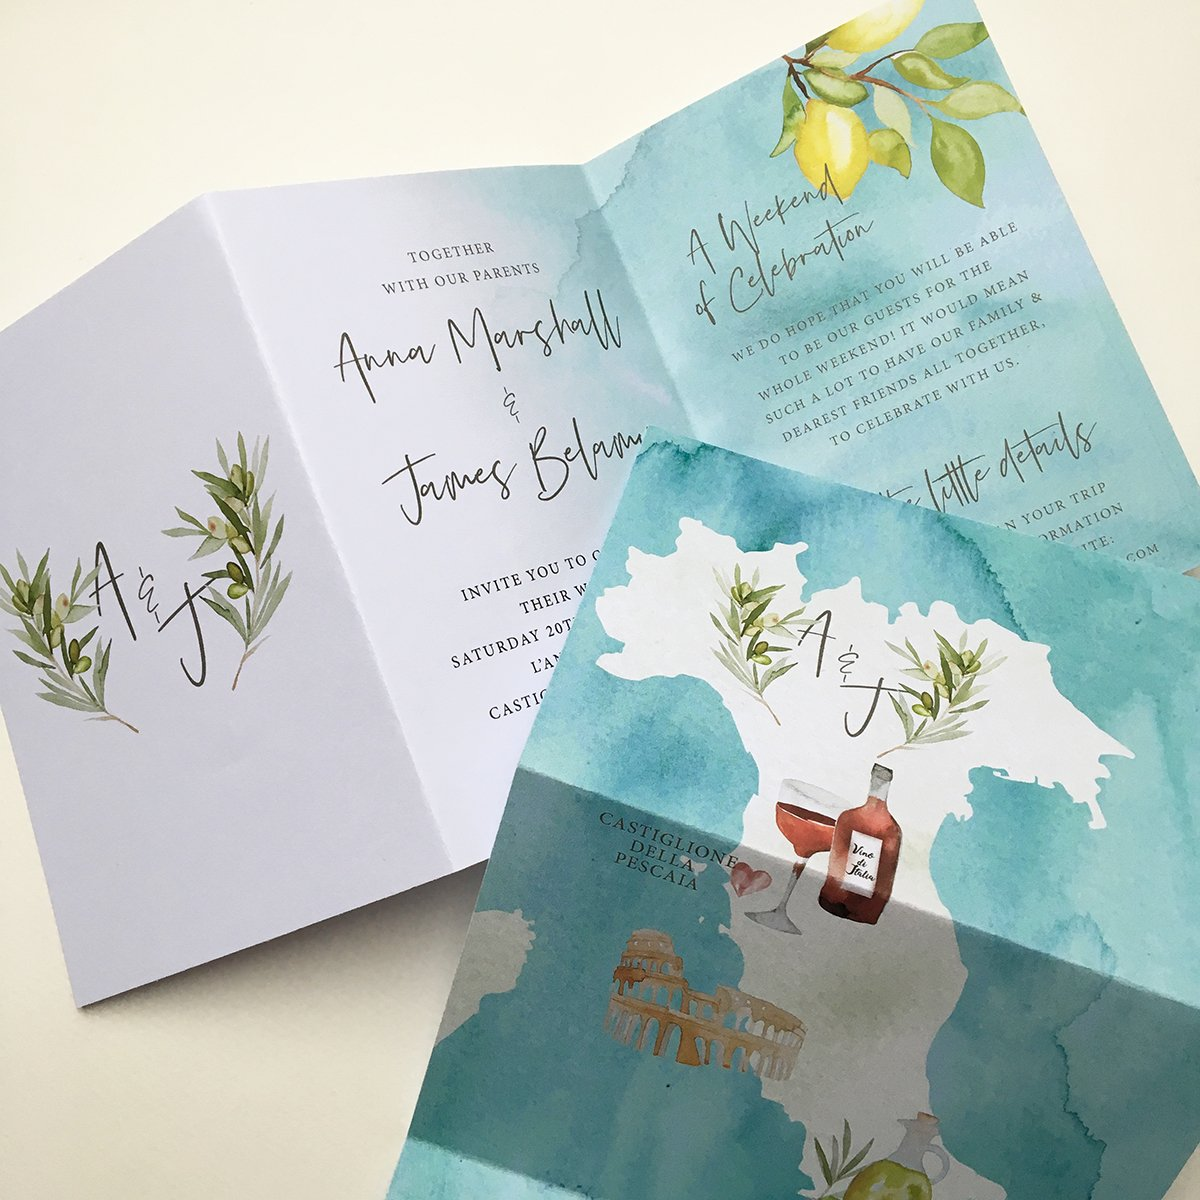 Trending Wedding Invitations: My 5 Favourite Wedding Trends For 2019: Thoughts From A